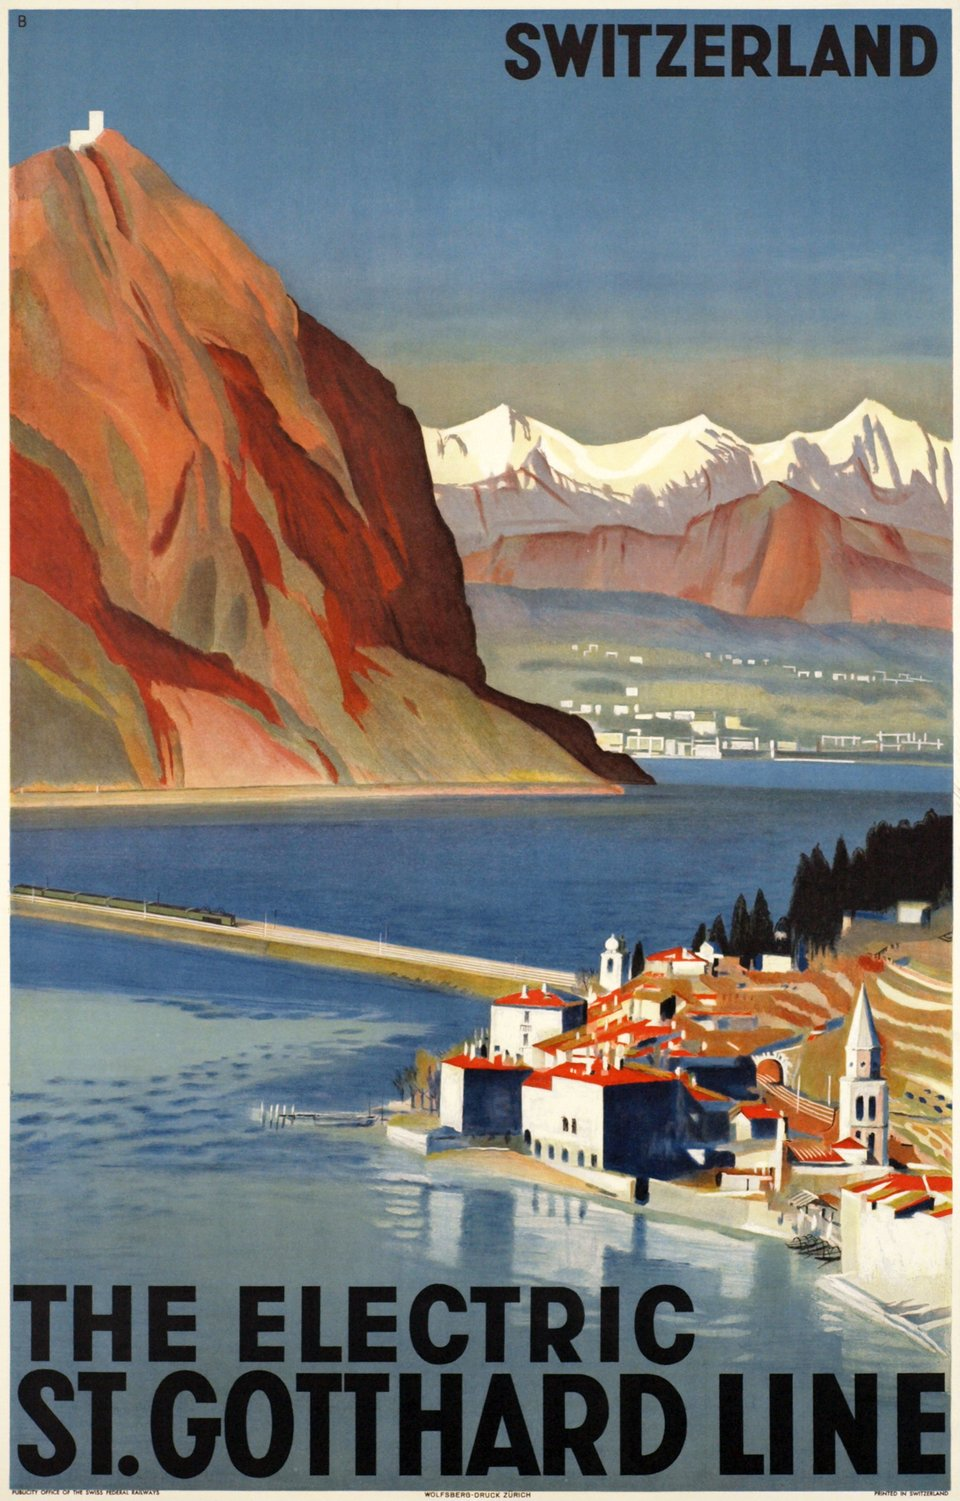 The Electric St-Gotthard Line, Switzerland – Affiche ancienne – Otto BAUMBERGER – 1935